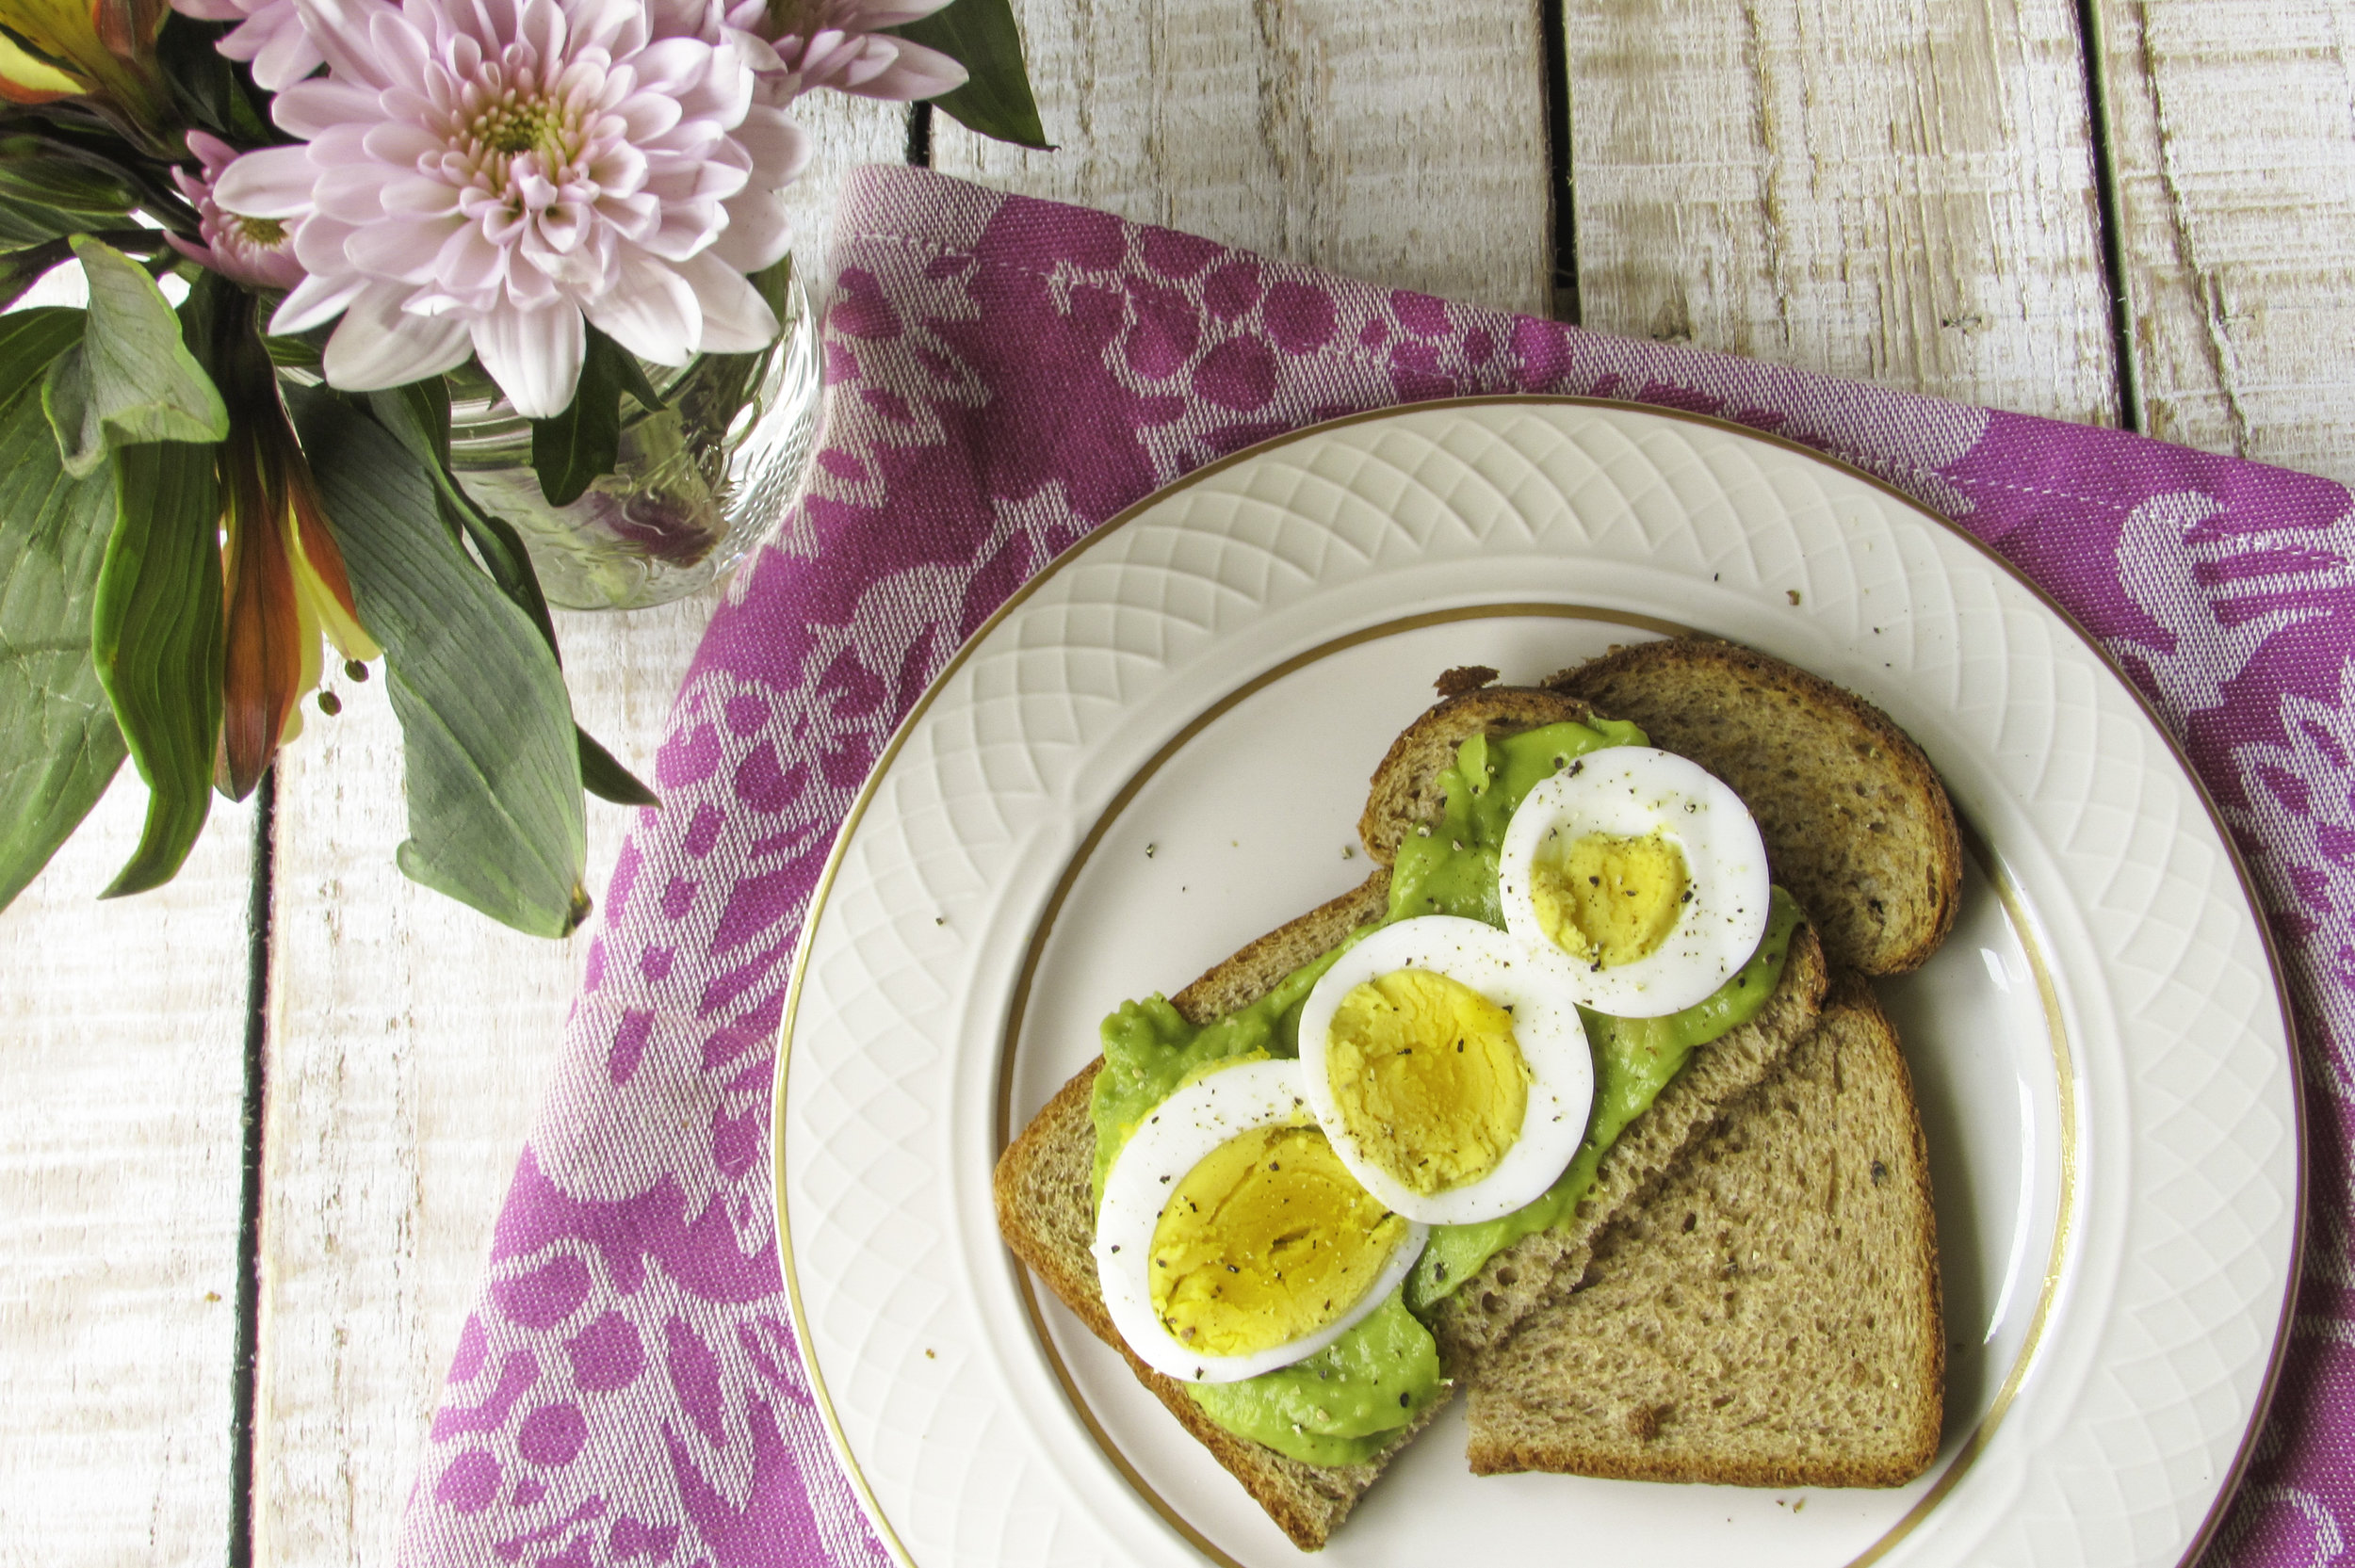 Guacamole, hard-boiled egg slices and fresh ground black pepper